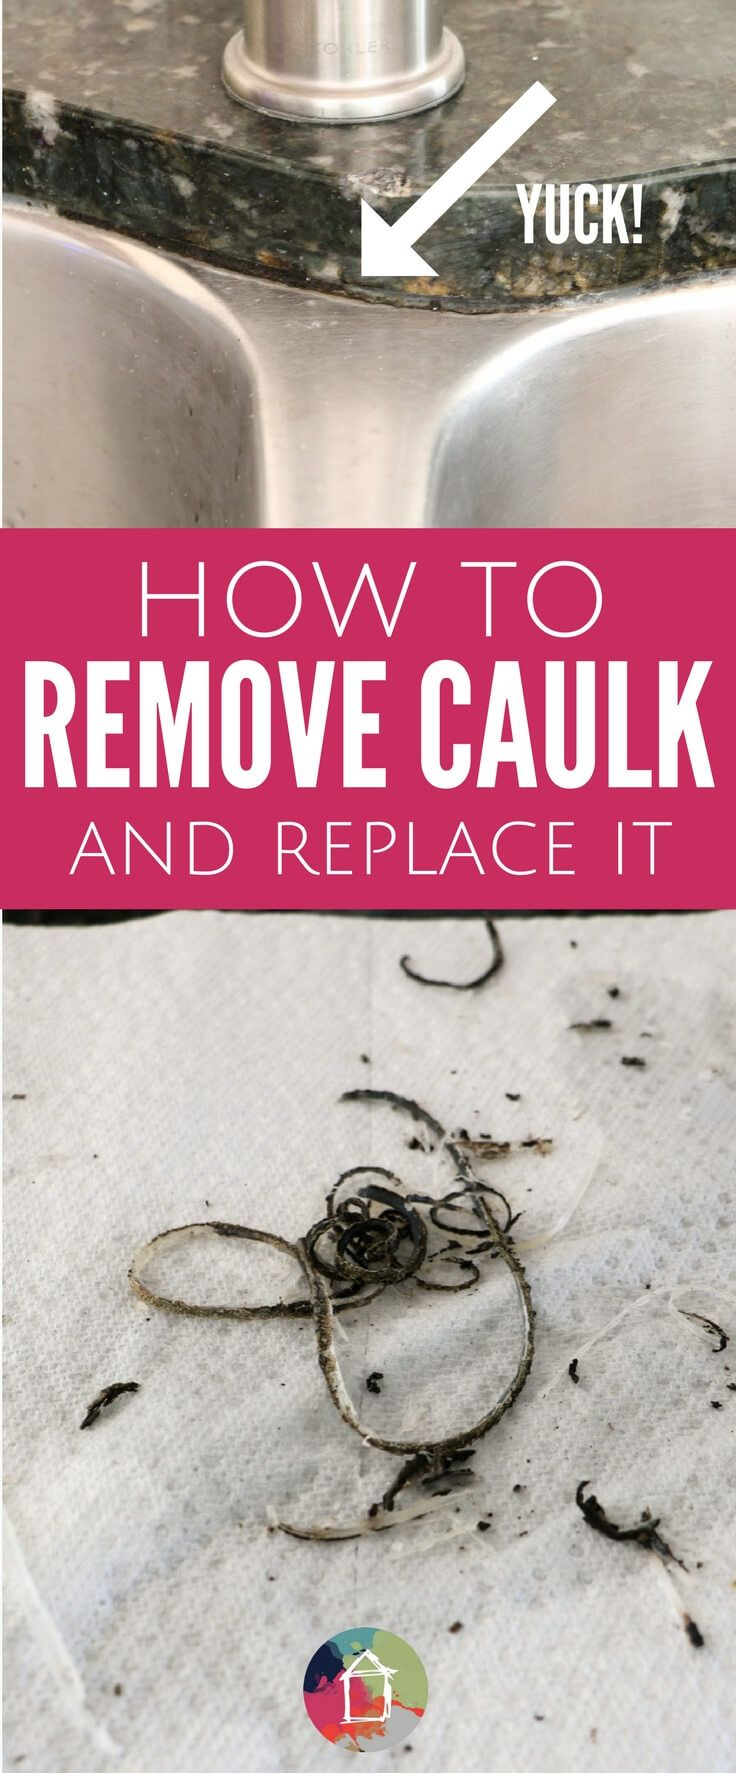 how to remove caulk and replace it tutorials learning and kitchens ever wondered how to remove caulk and replace it it s easy learn how to